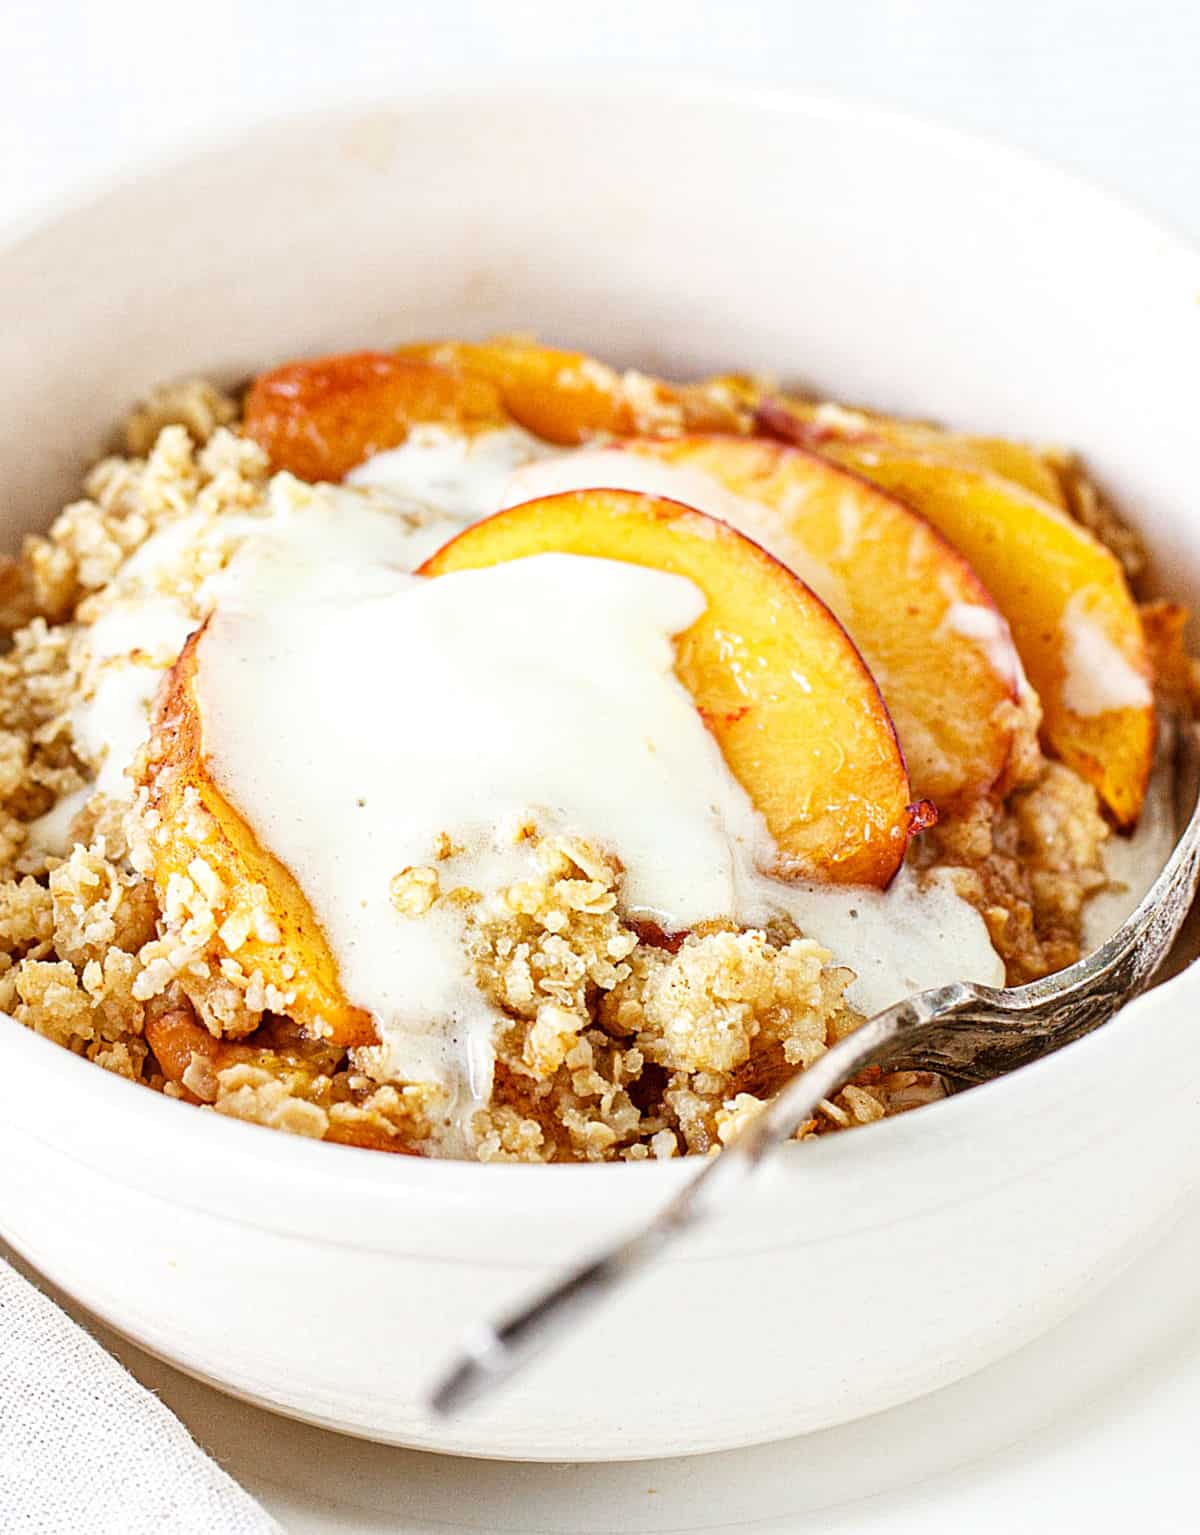 Peach crisp serving with ice cream in white bowl with a silver spoon